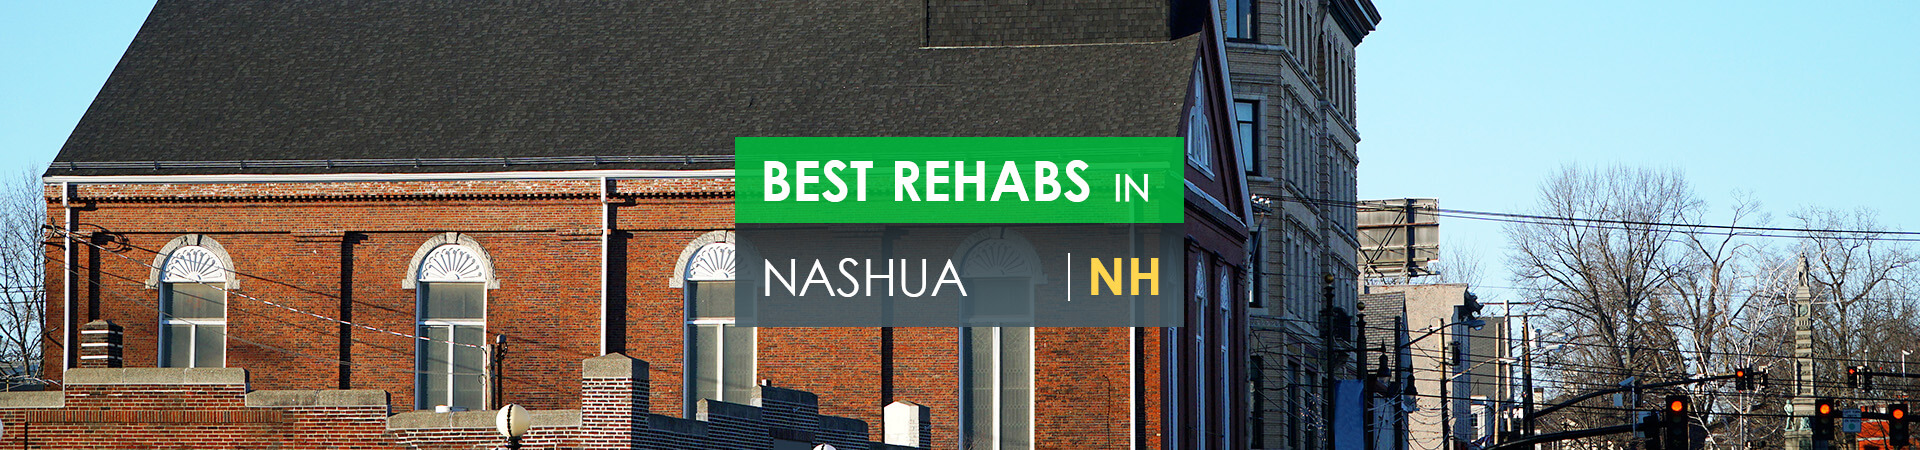 Best rehabs in Nashua, NH